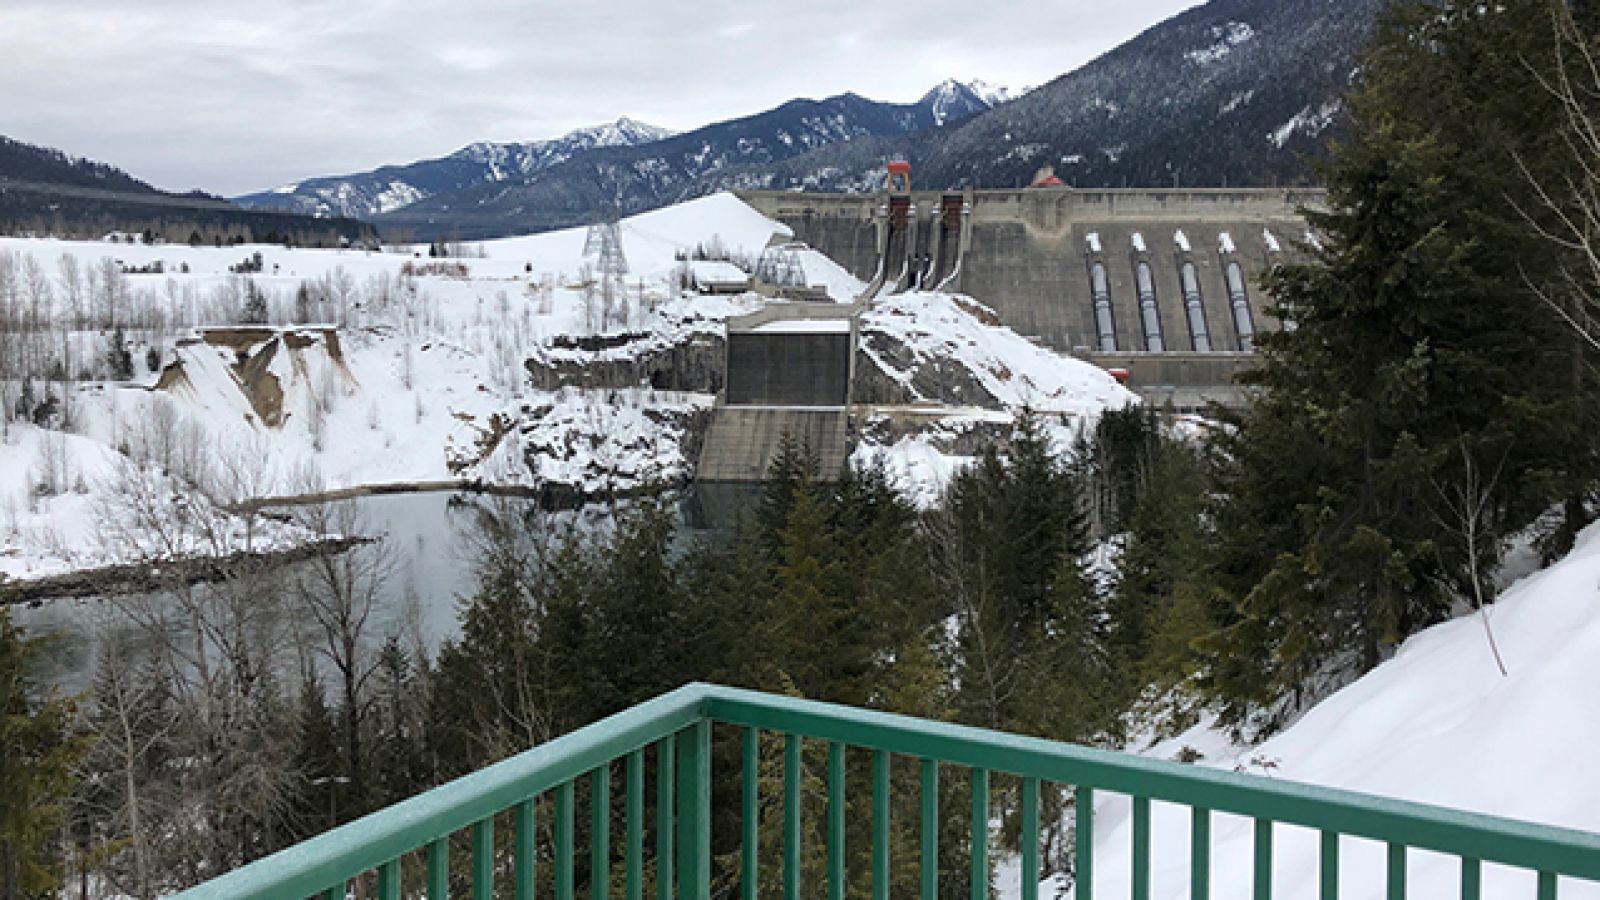 Walk to the viewpoint and checkout the Revelstoke Dam.